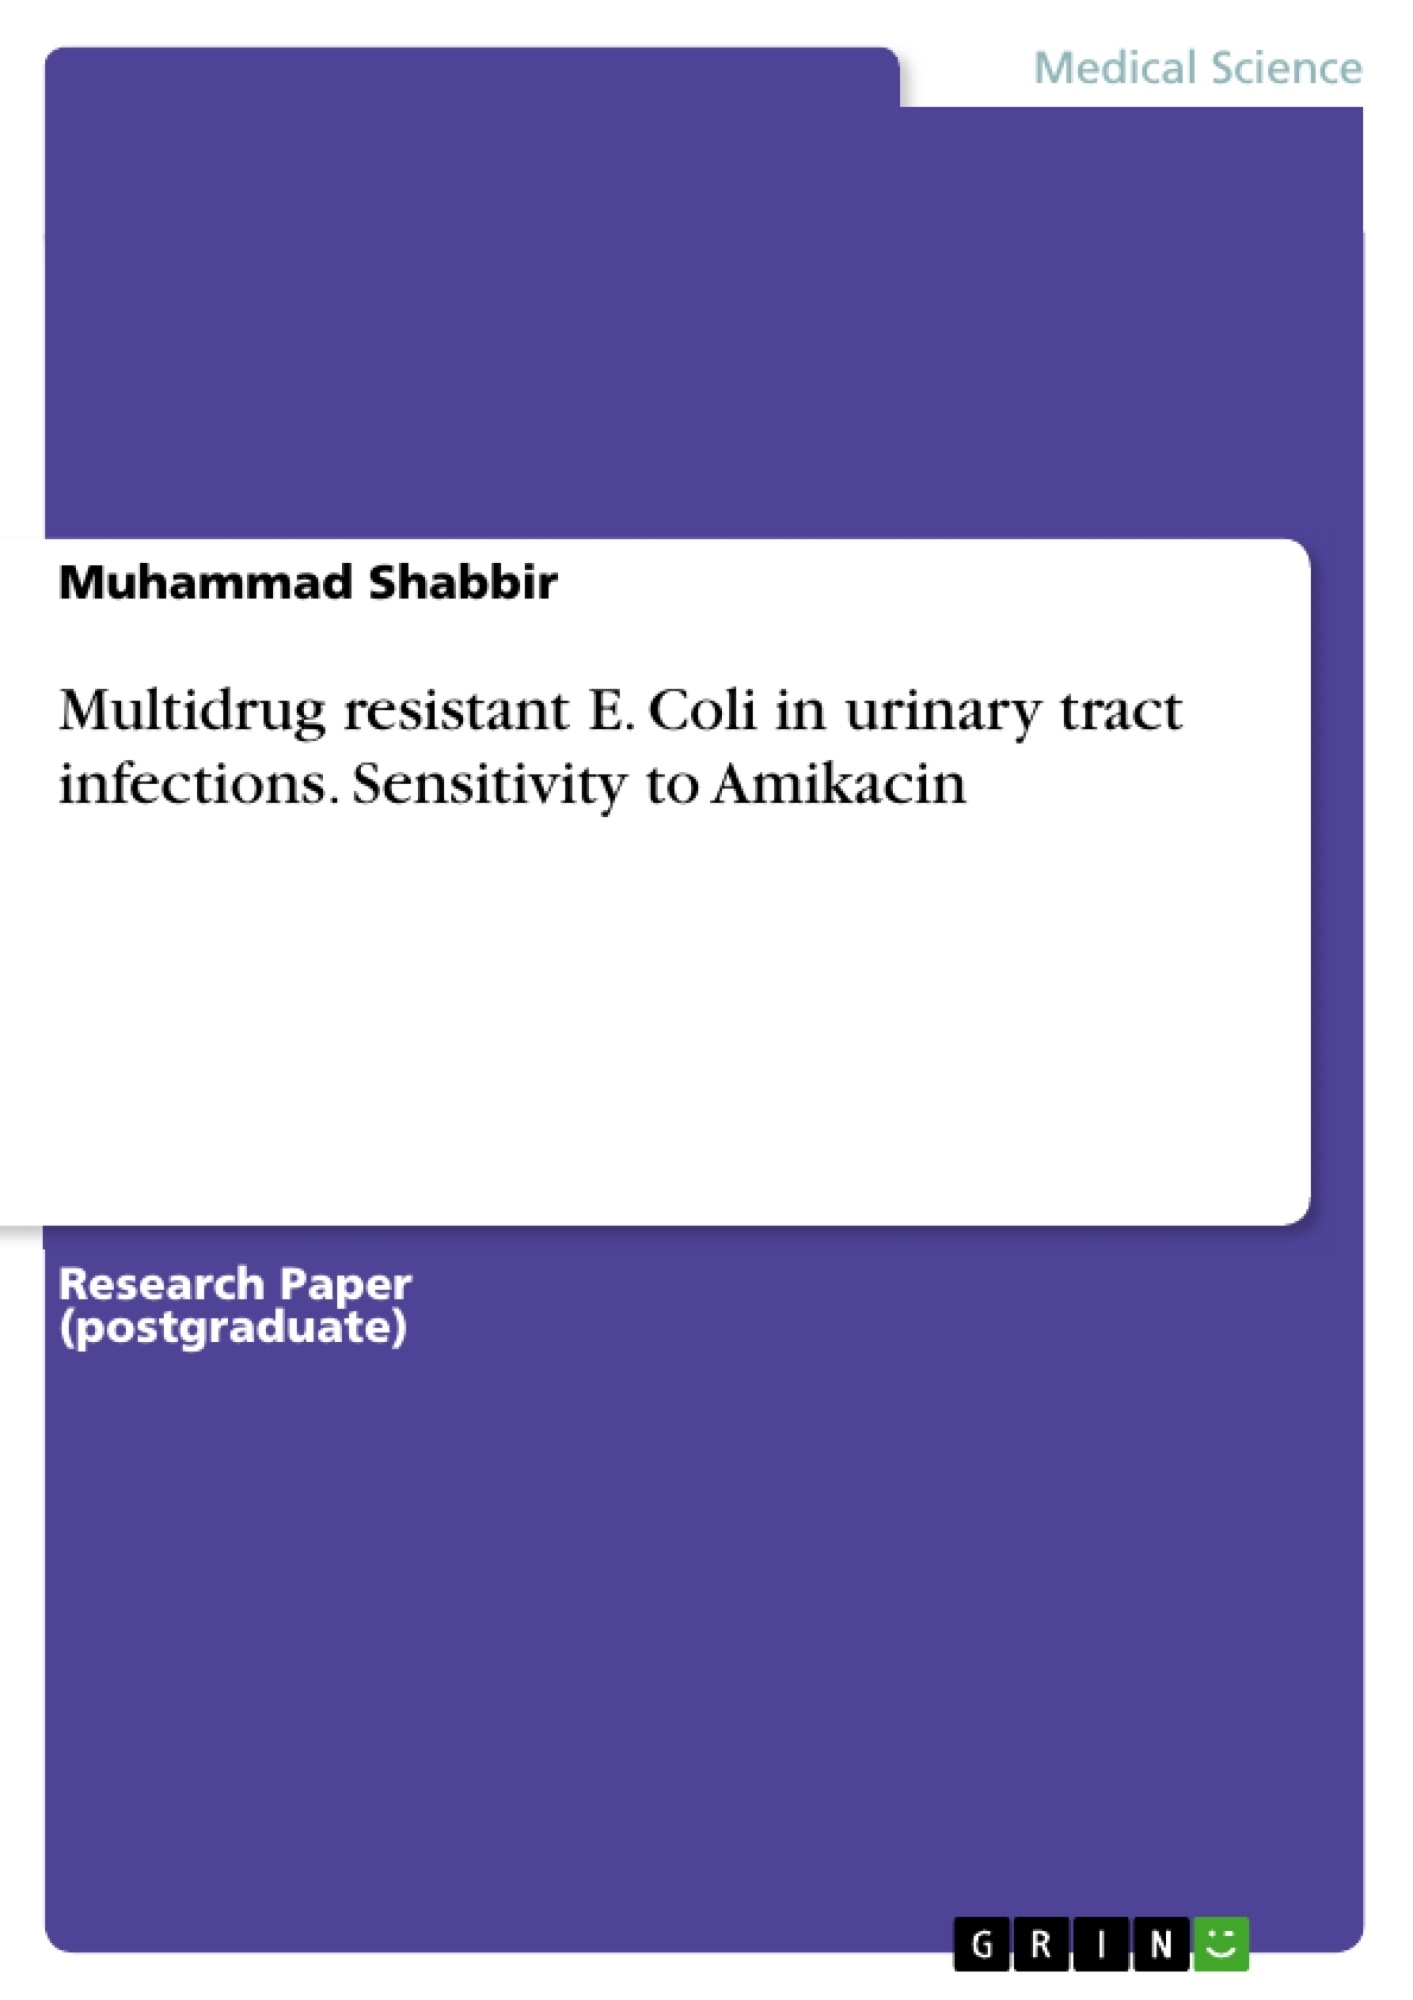 Title: Multidrug resistant E. Coli in urinary tract infections. Sensitivity to Amikacin